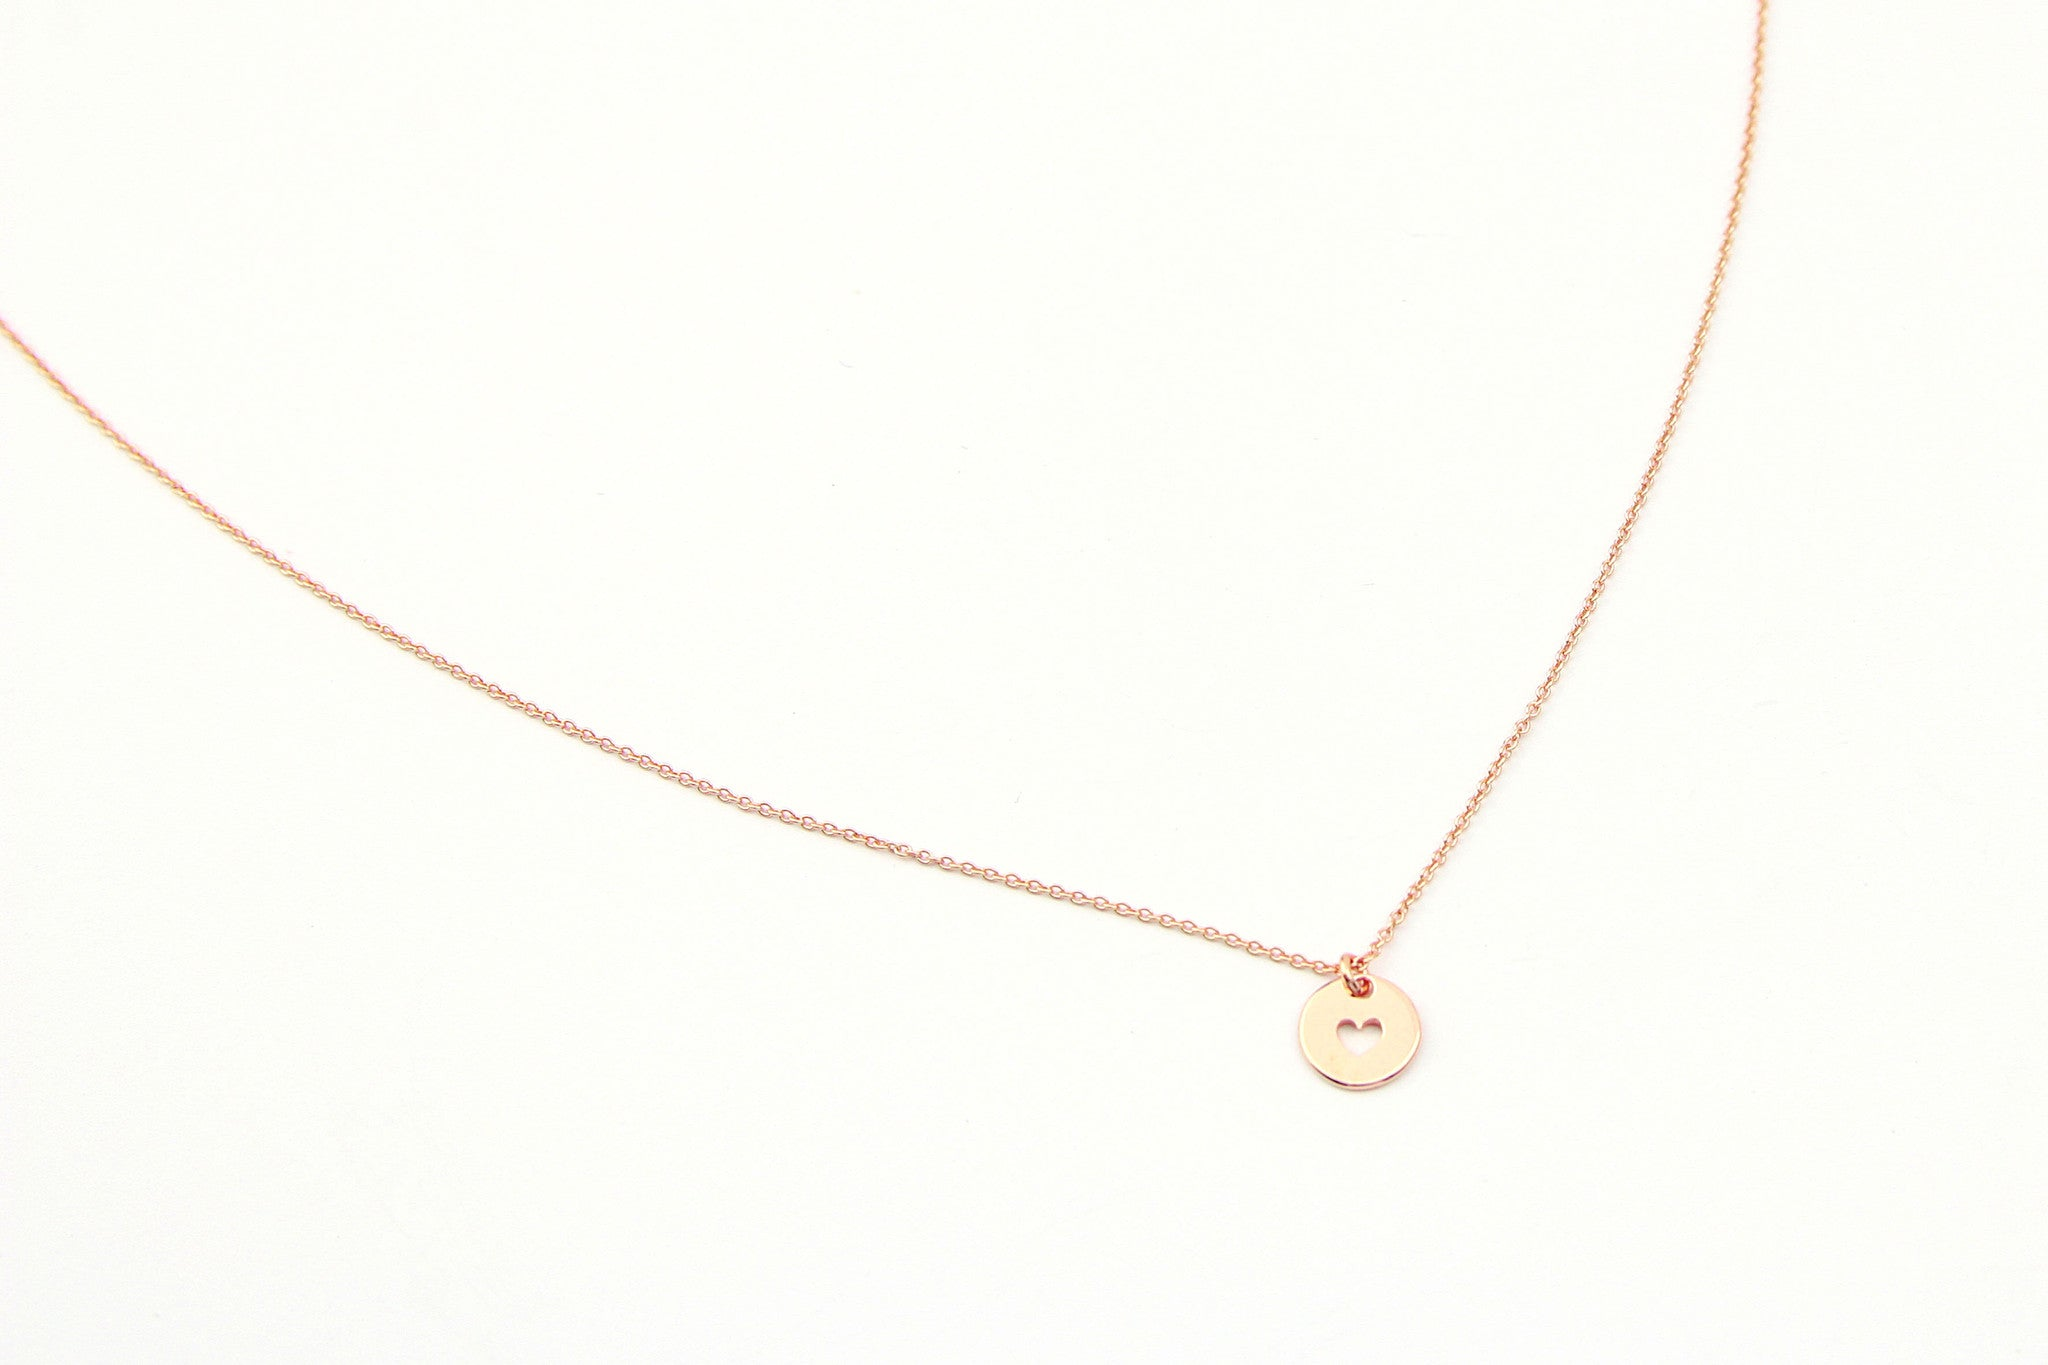 jewelberry necklace kette love token anchor chain rose gold plated sterling silver fine jewelry handmade with love fairtrade